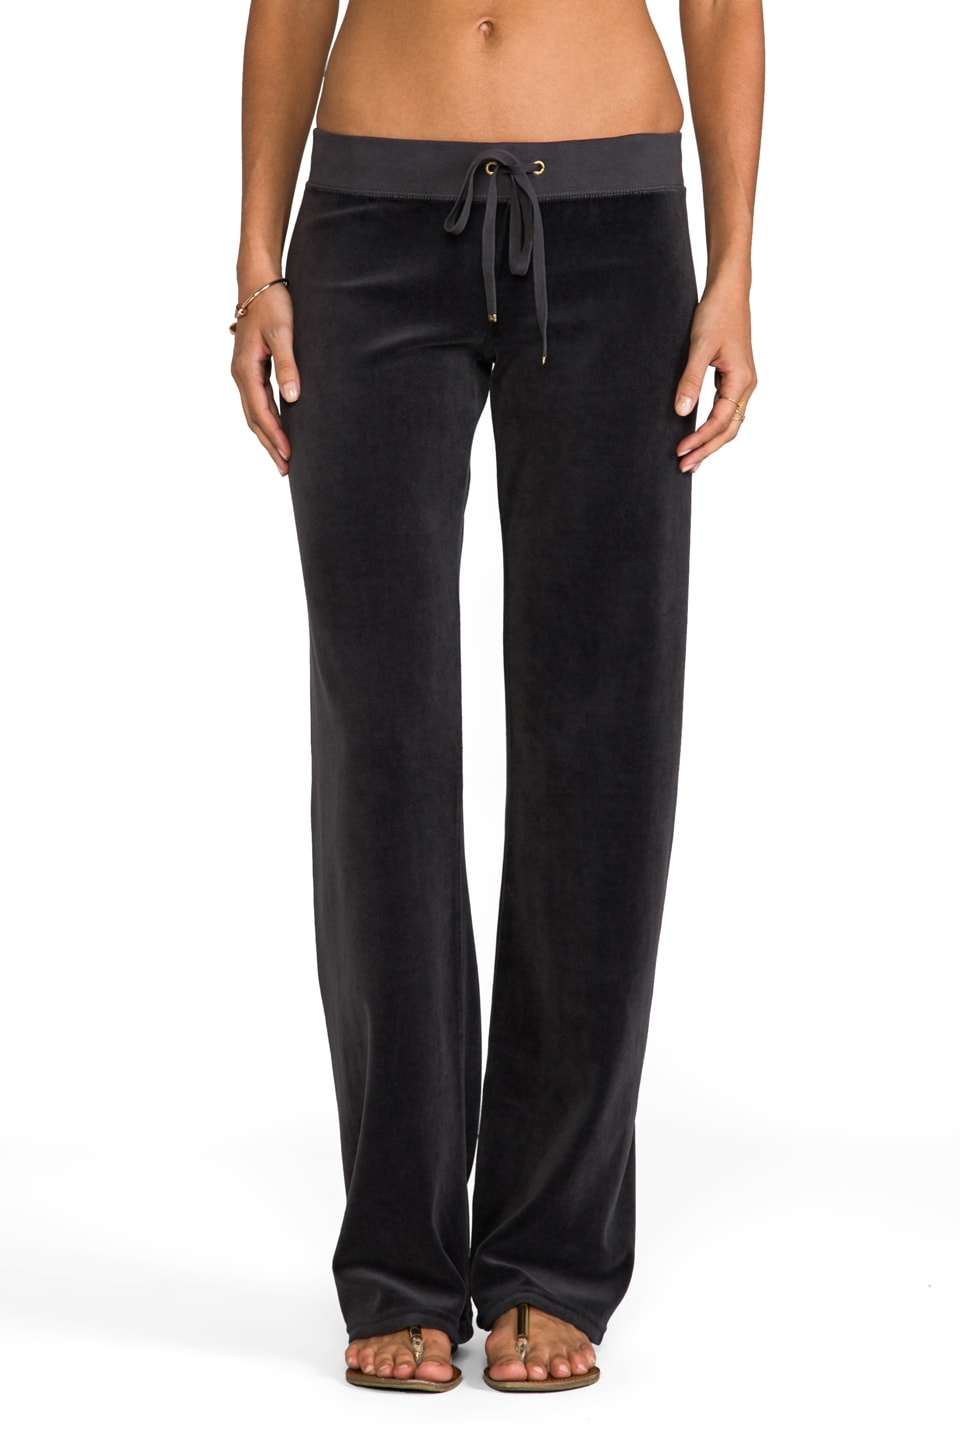 Juicy Couture Classic Velour Original Leg Pant in Top Hat